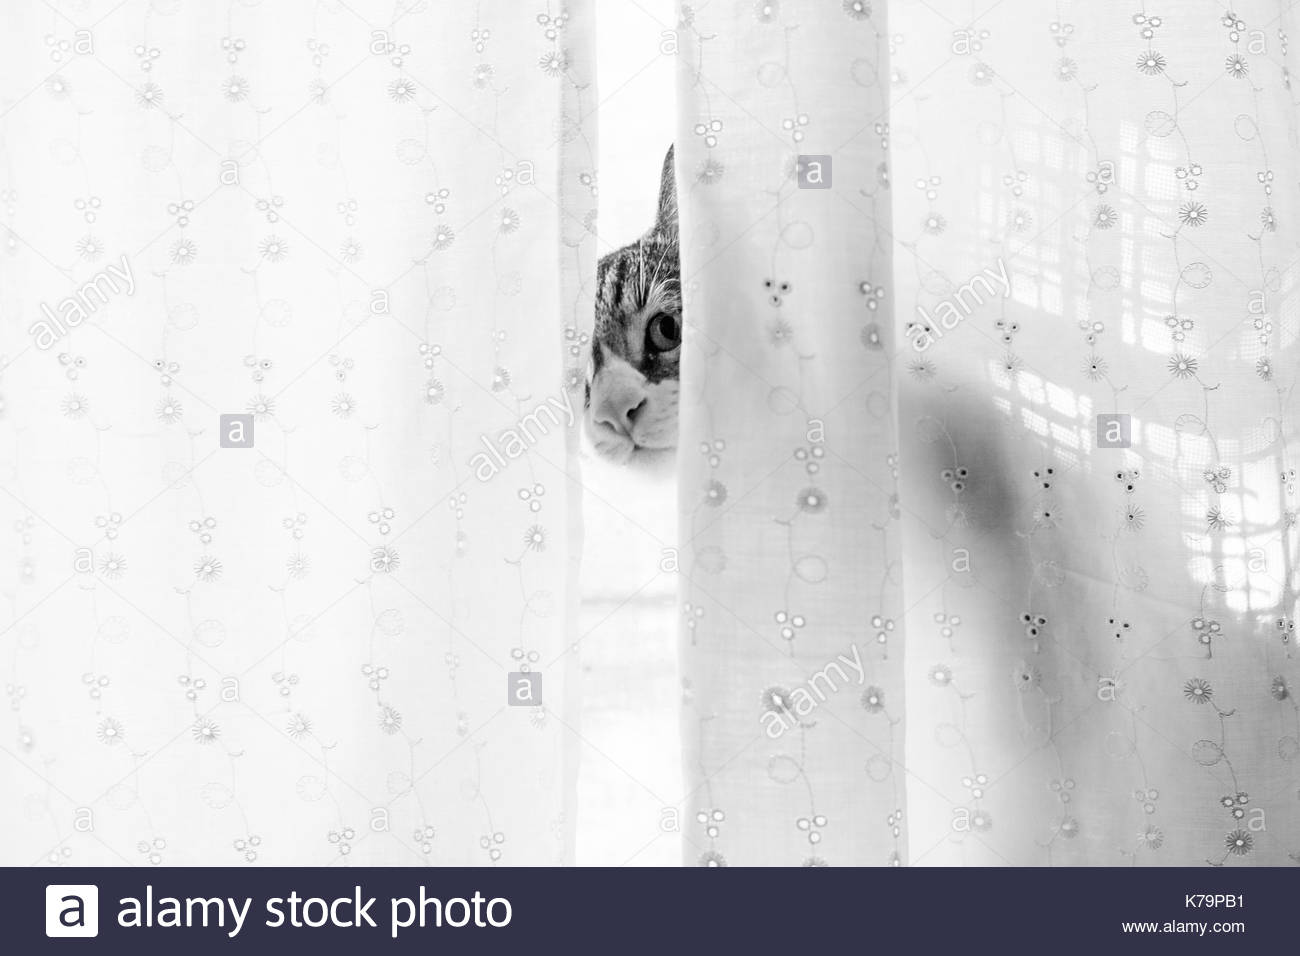 Cat hides behind a curtain - Stock Image